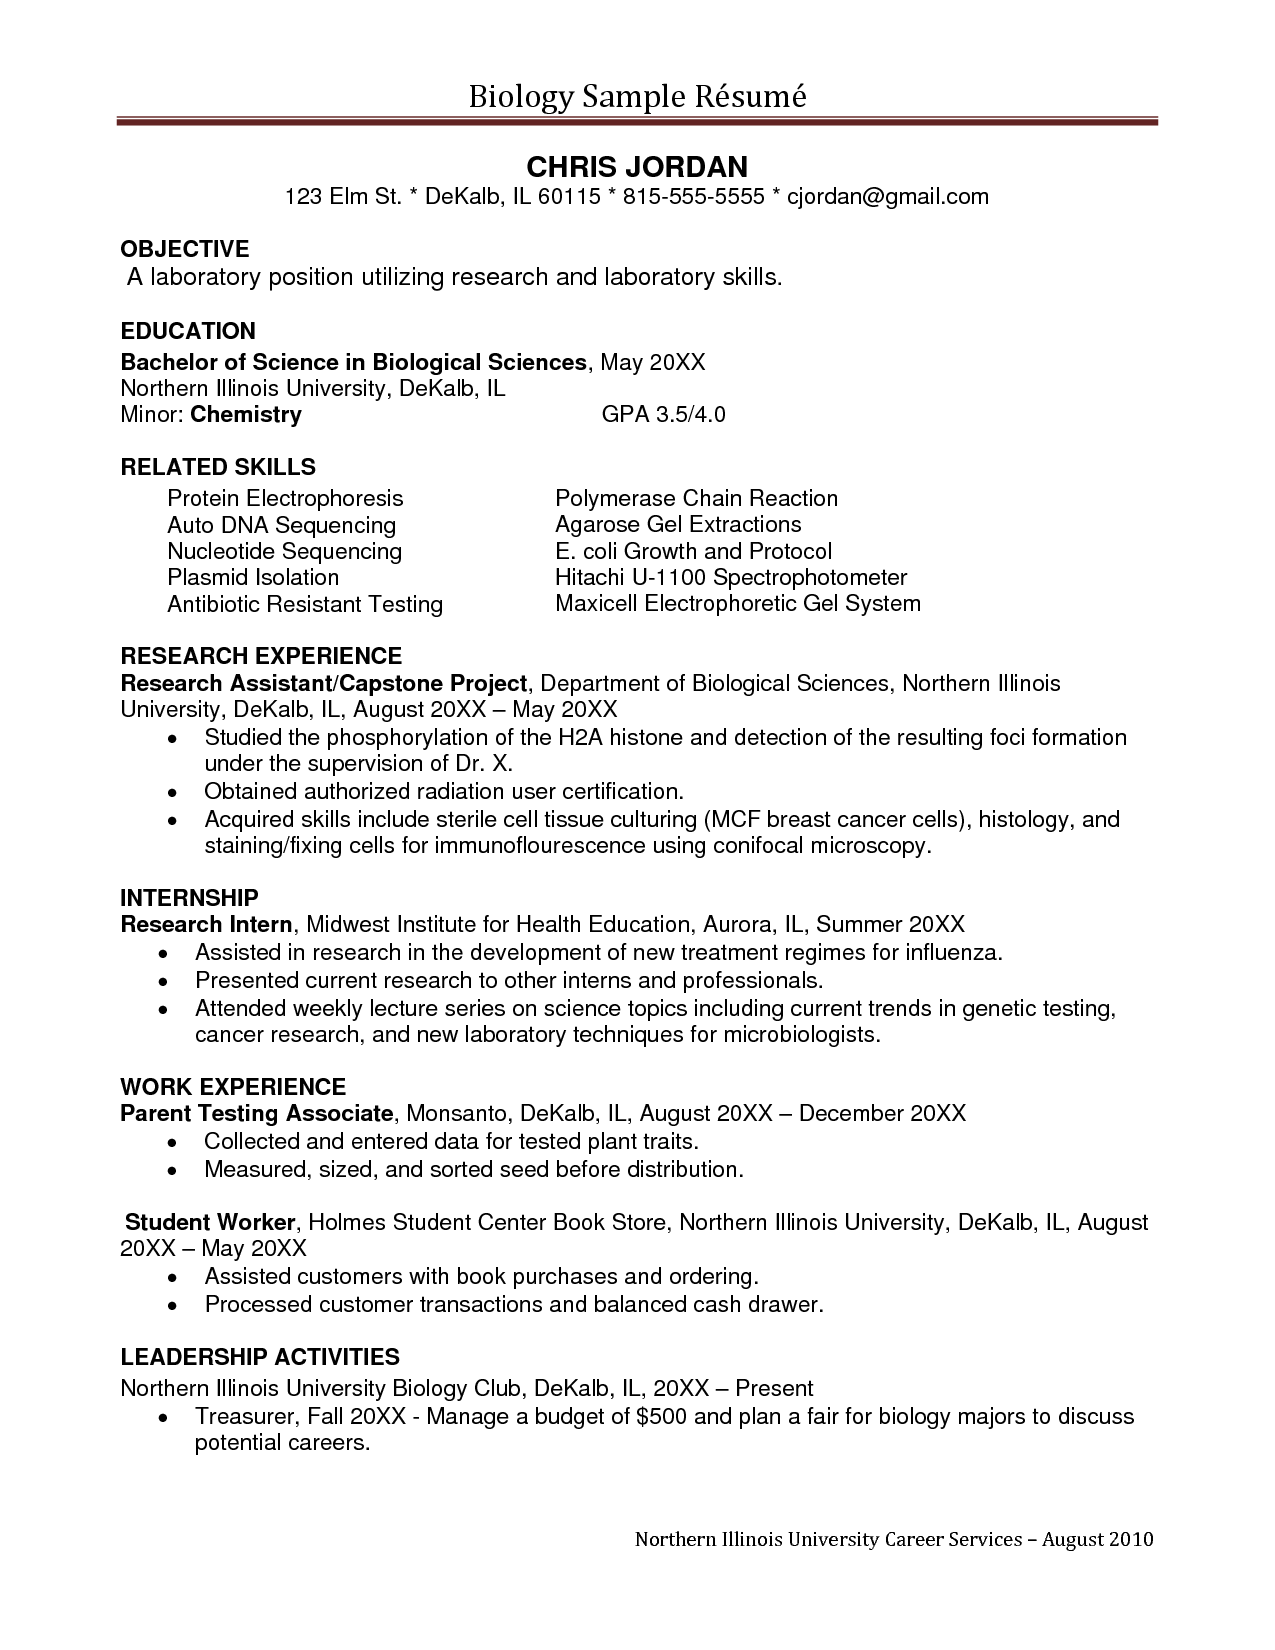 Sample, Undergraduate Research Assistant Resume Sample,ĺ Administrative  Assistant Resume Objective Examples, Medical  Medical Administrative Assistant Resume Samples